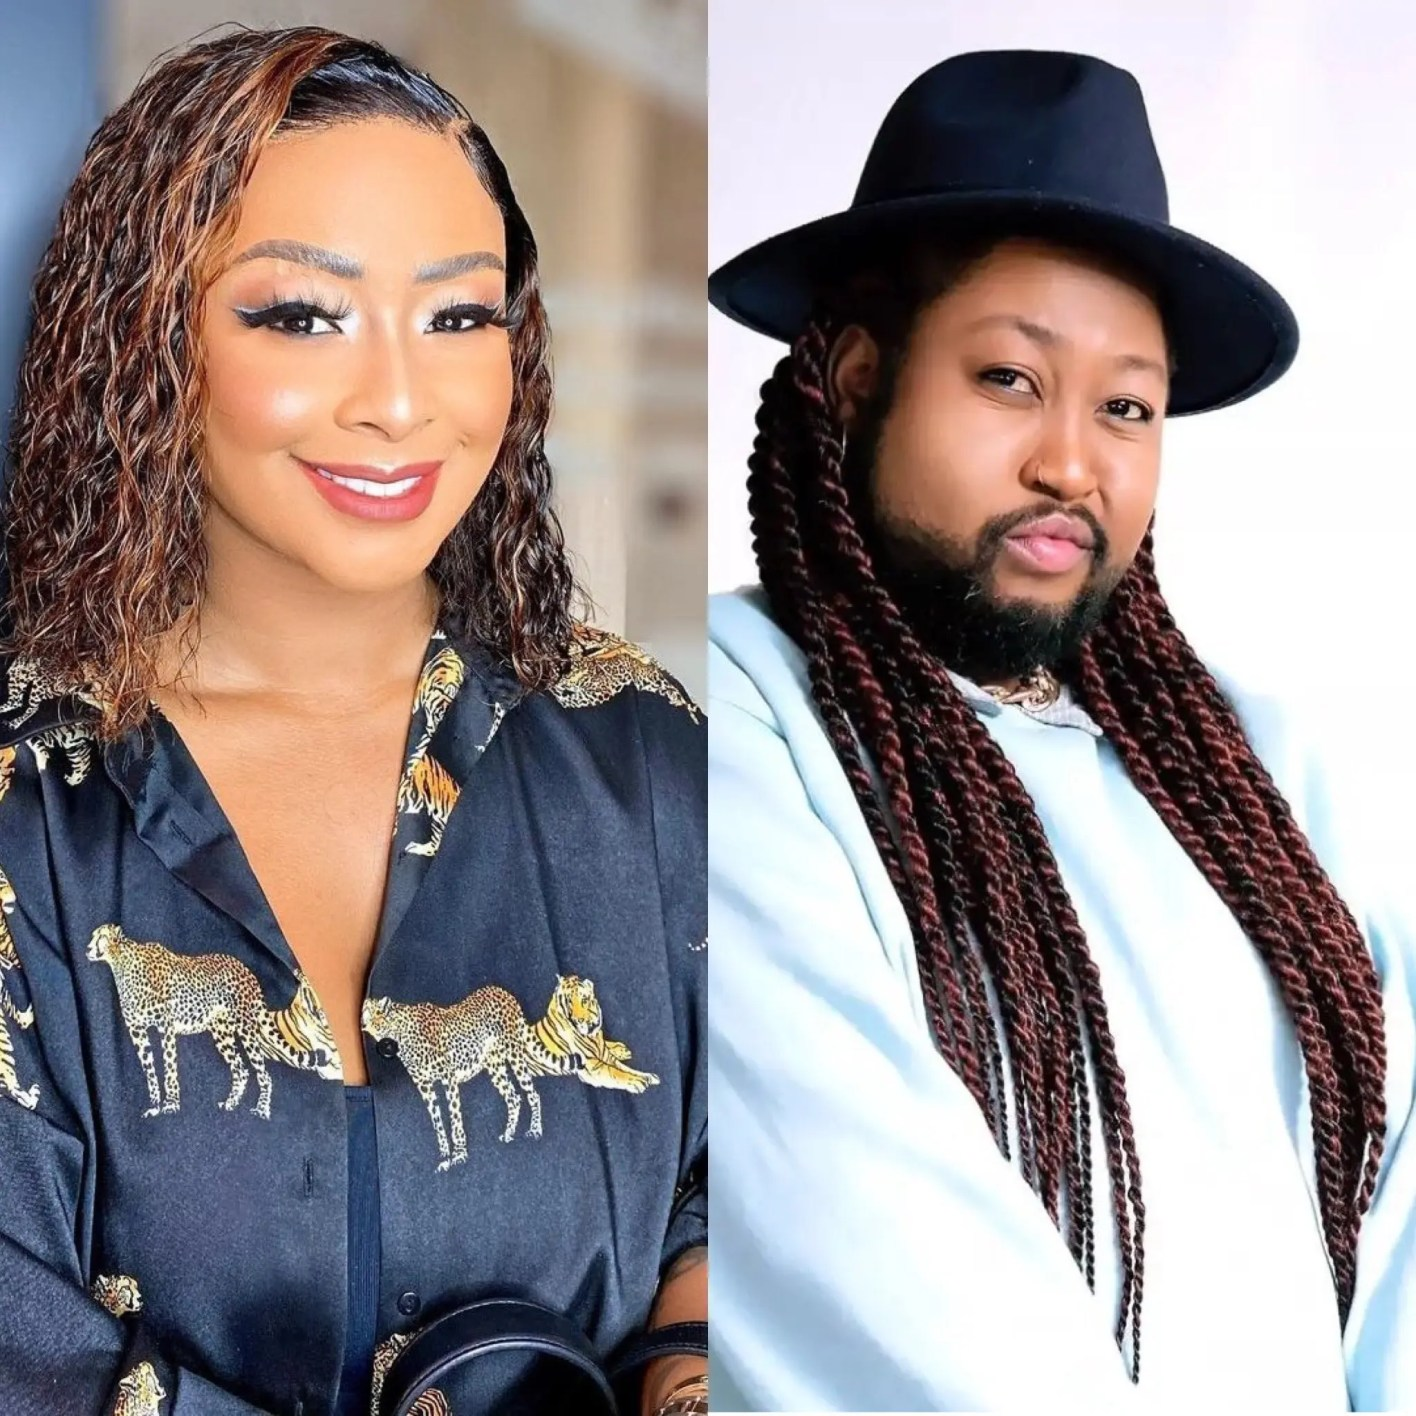 Clip of Boity and Bujy Bikwa's fight leaked – What really happened that night: LISTEN